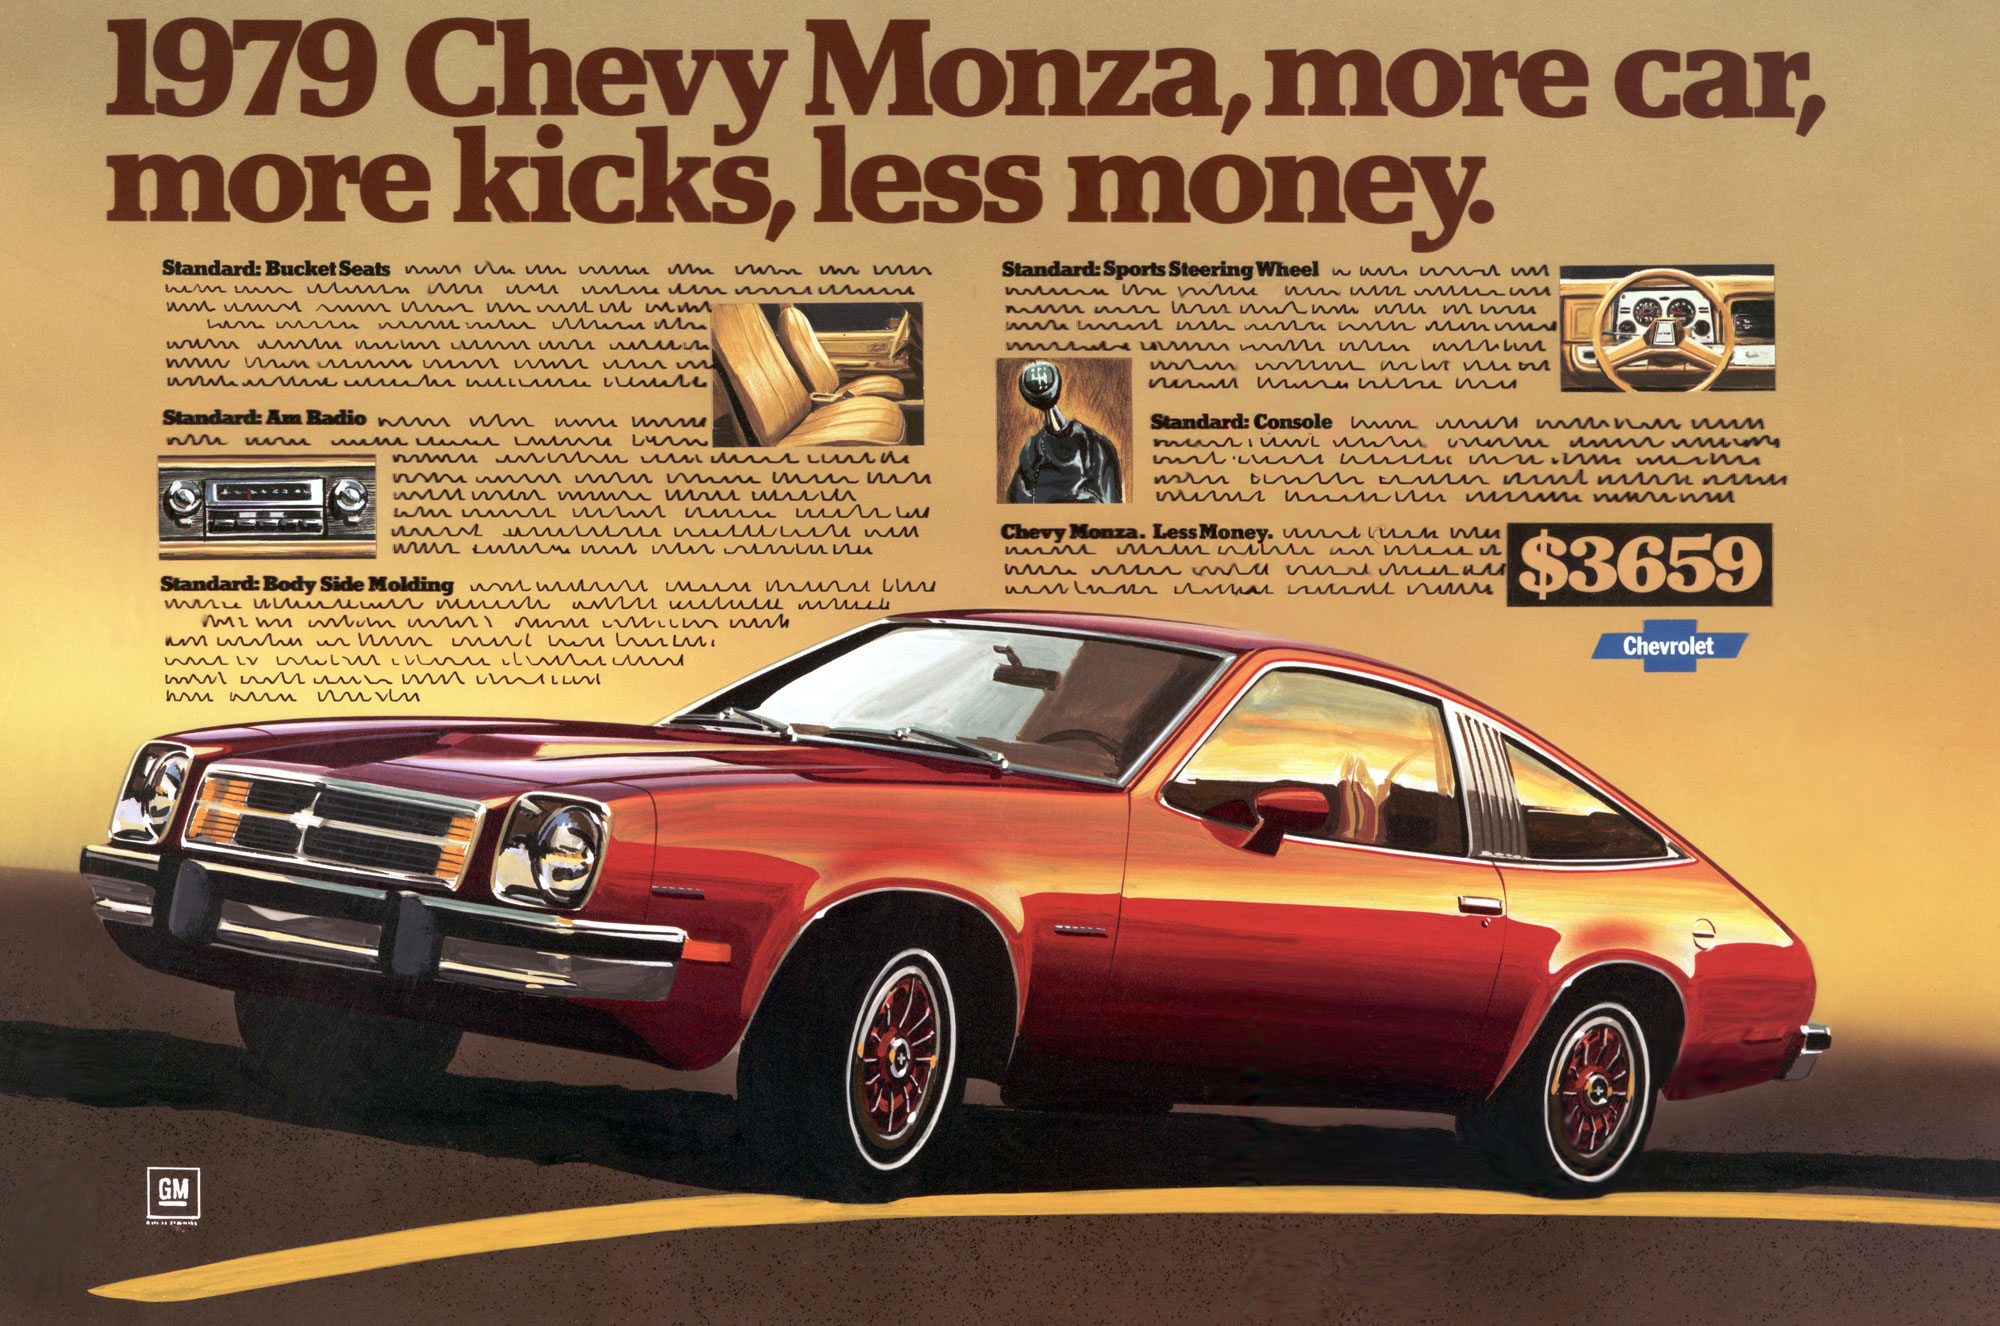 Chevrolet Monza print advertisement